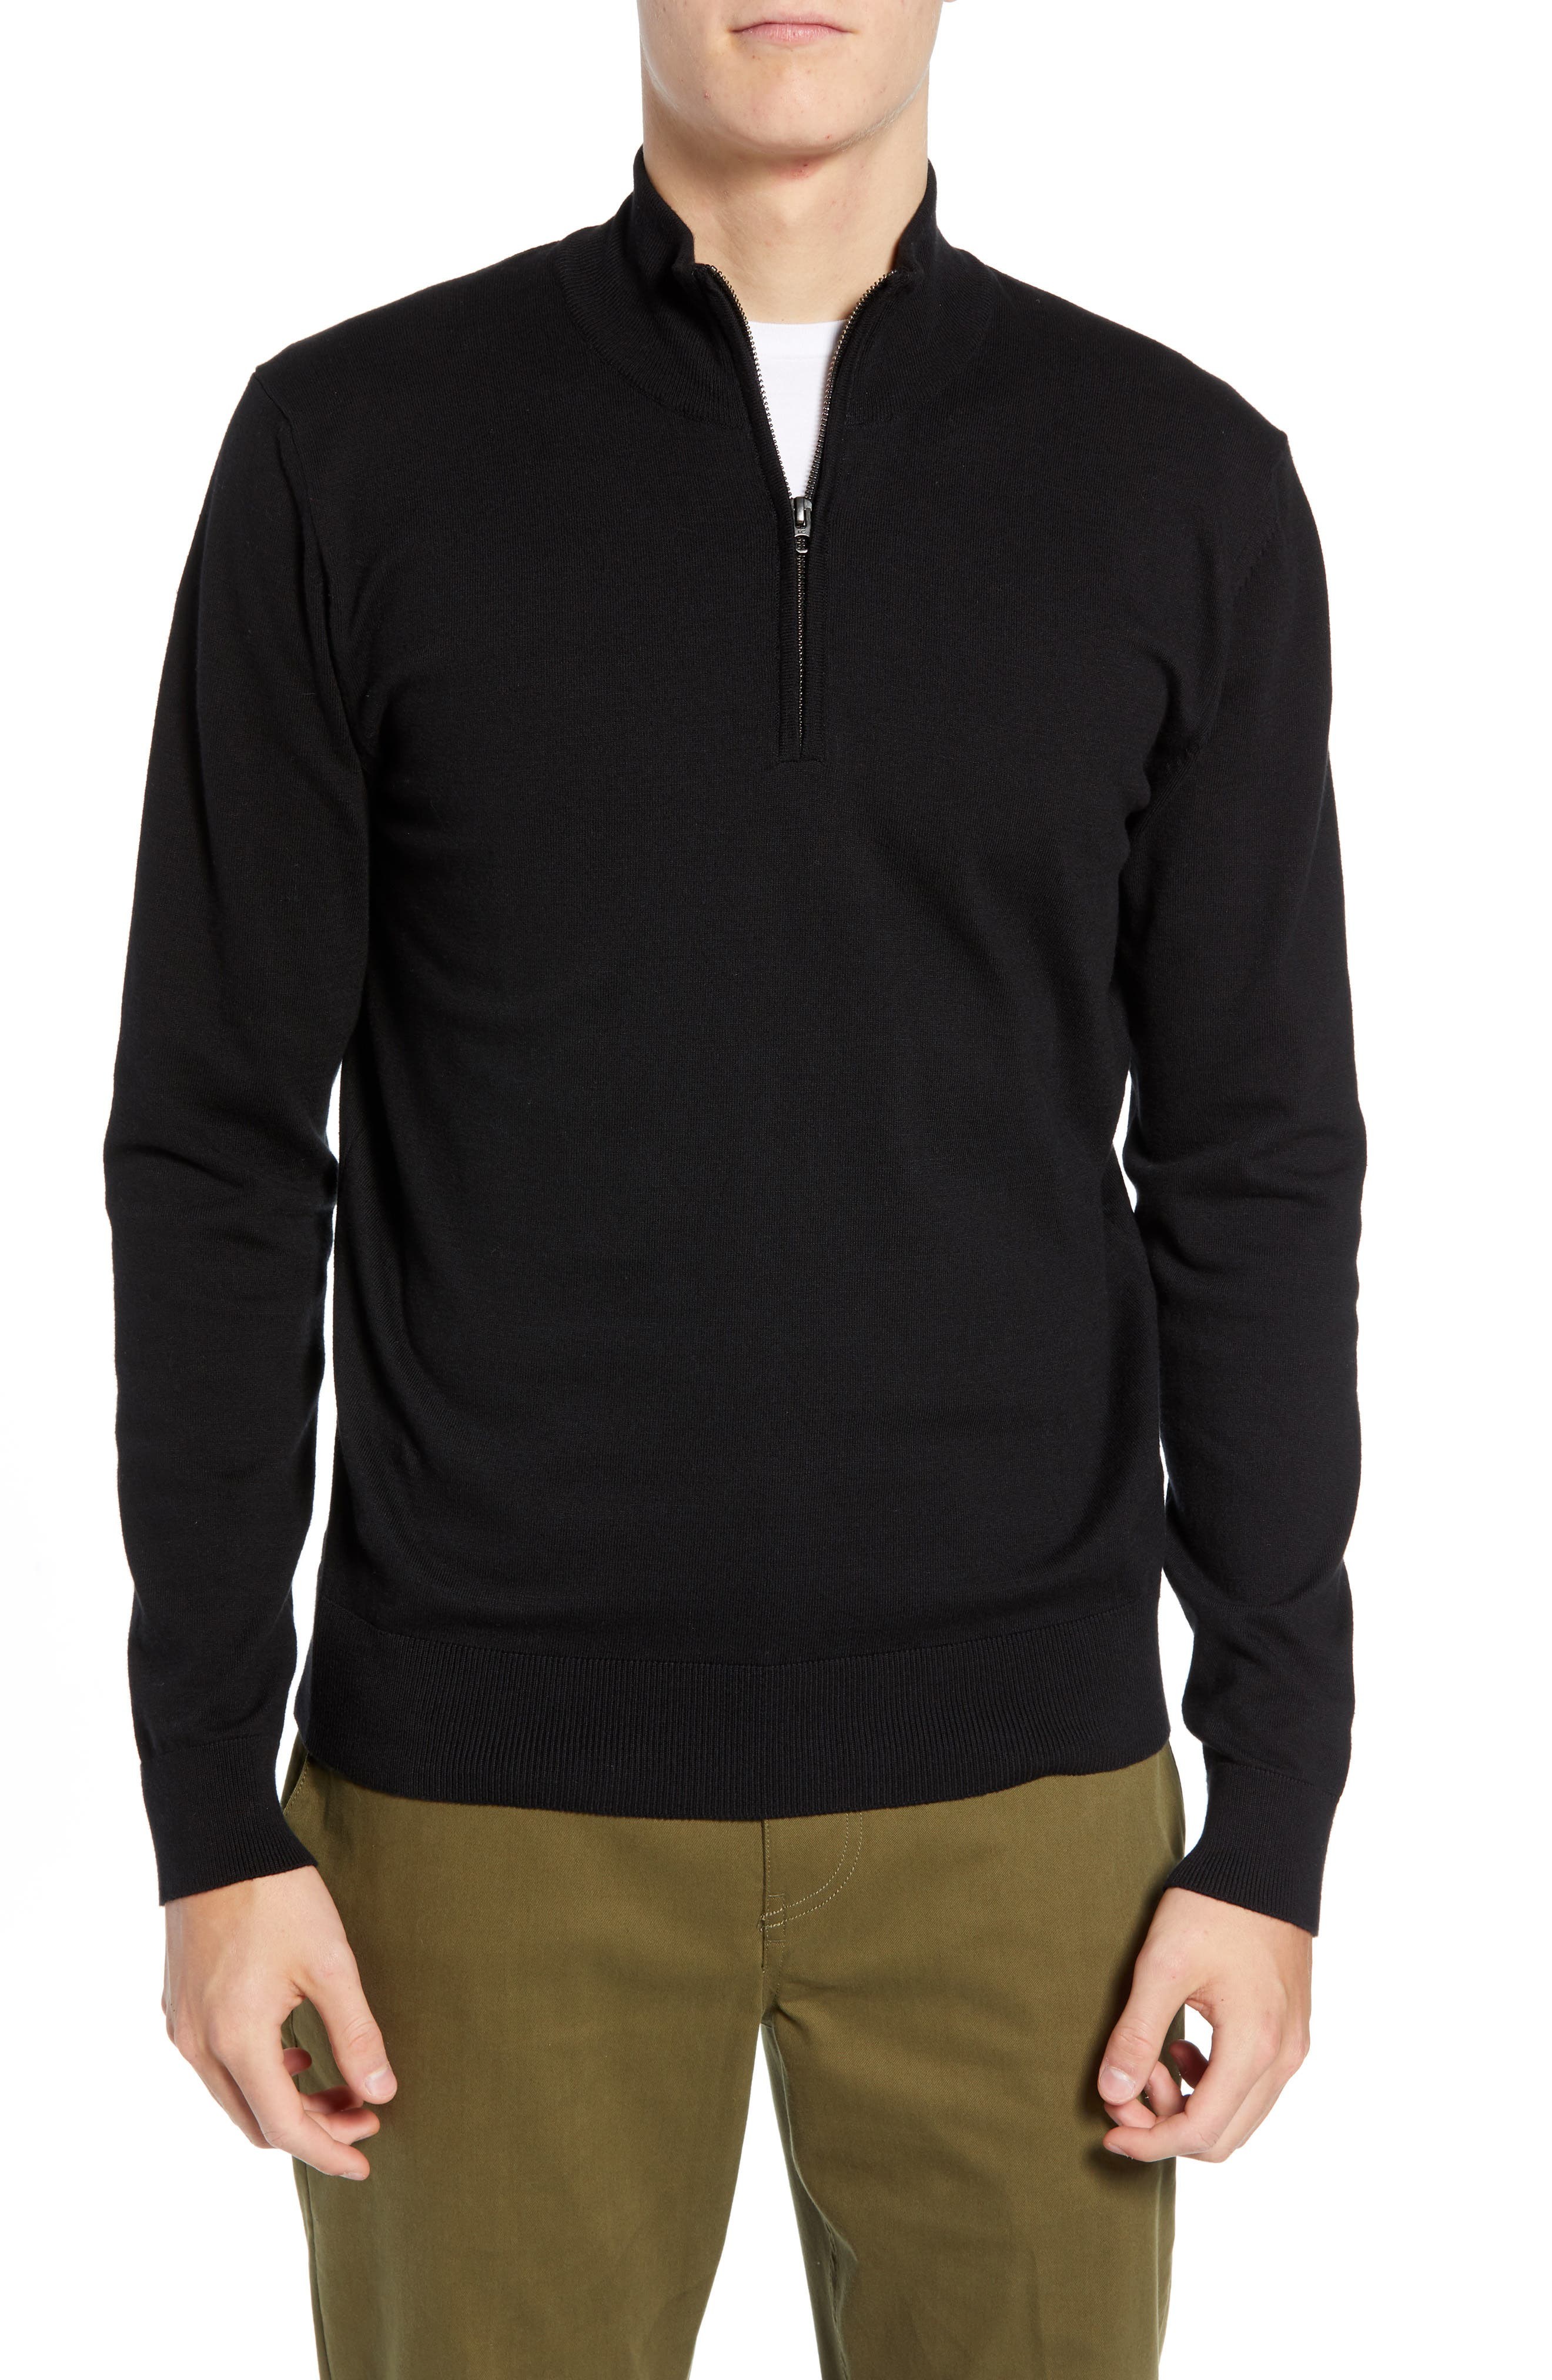 French Connection Stretch Cotton Quarter Zip Sweater, Black